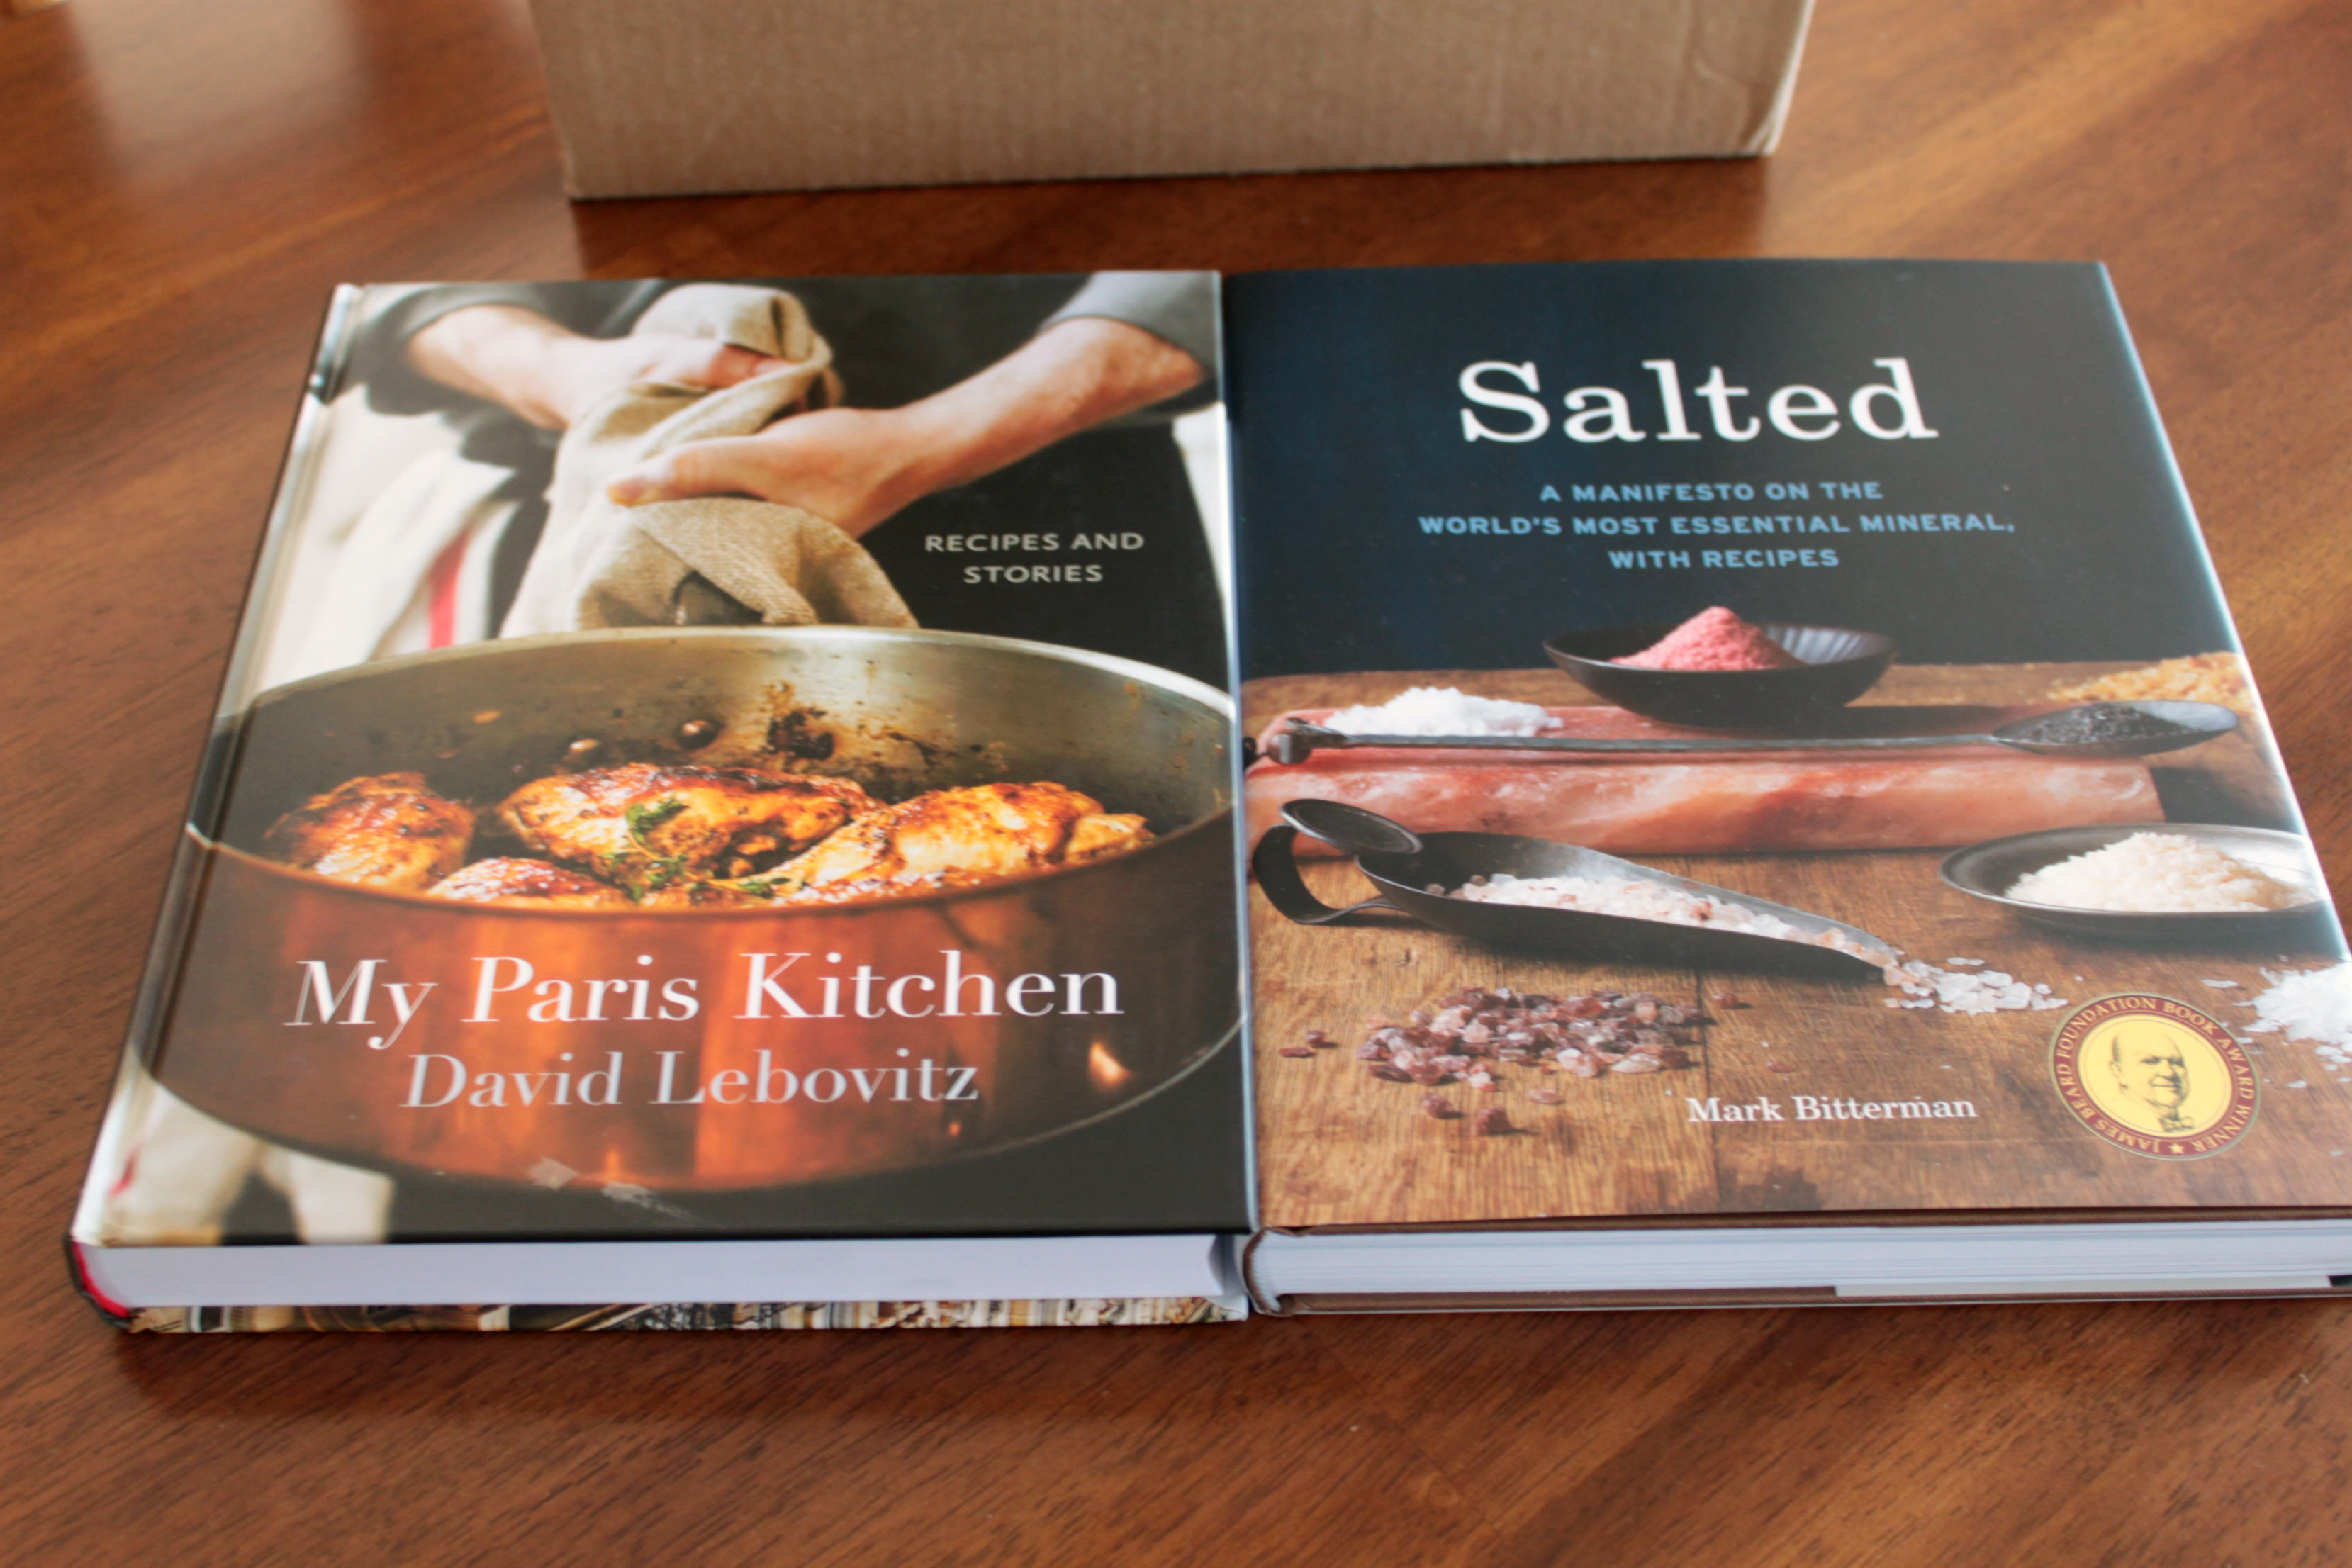 I Canu0027t Wait To Get Cooking From U0027My Paris Kitchenu0027 As Most Of The Recipes  Iu0027ve Made Via David Lebovitz Have Been Amazing! Books